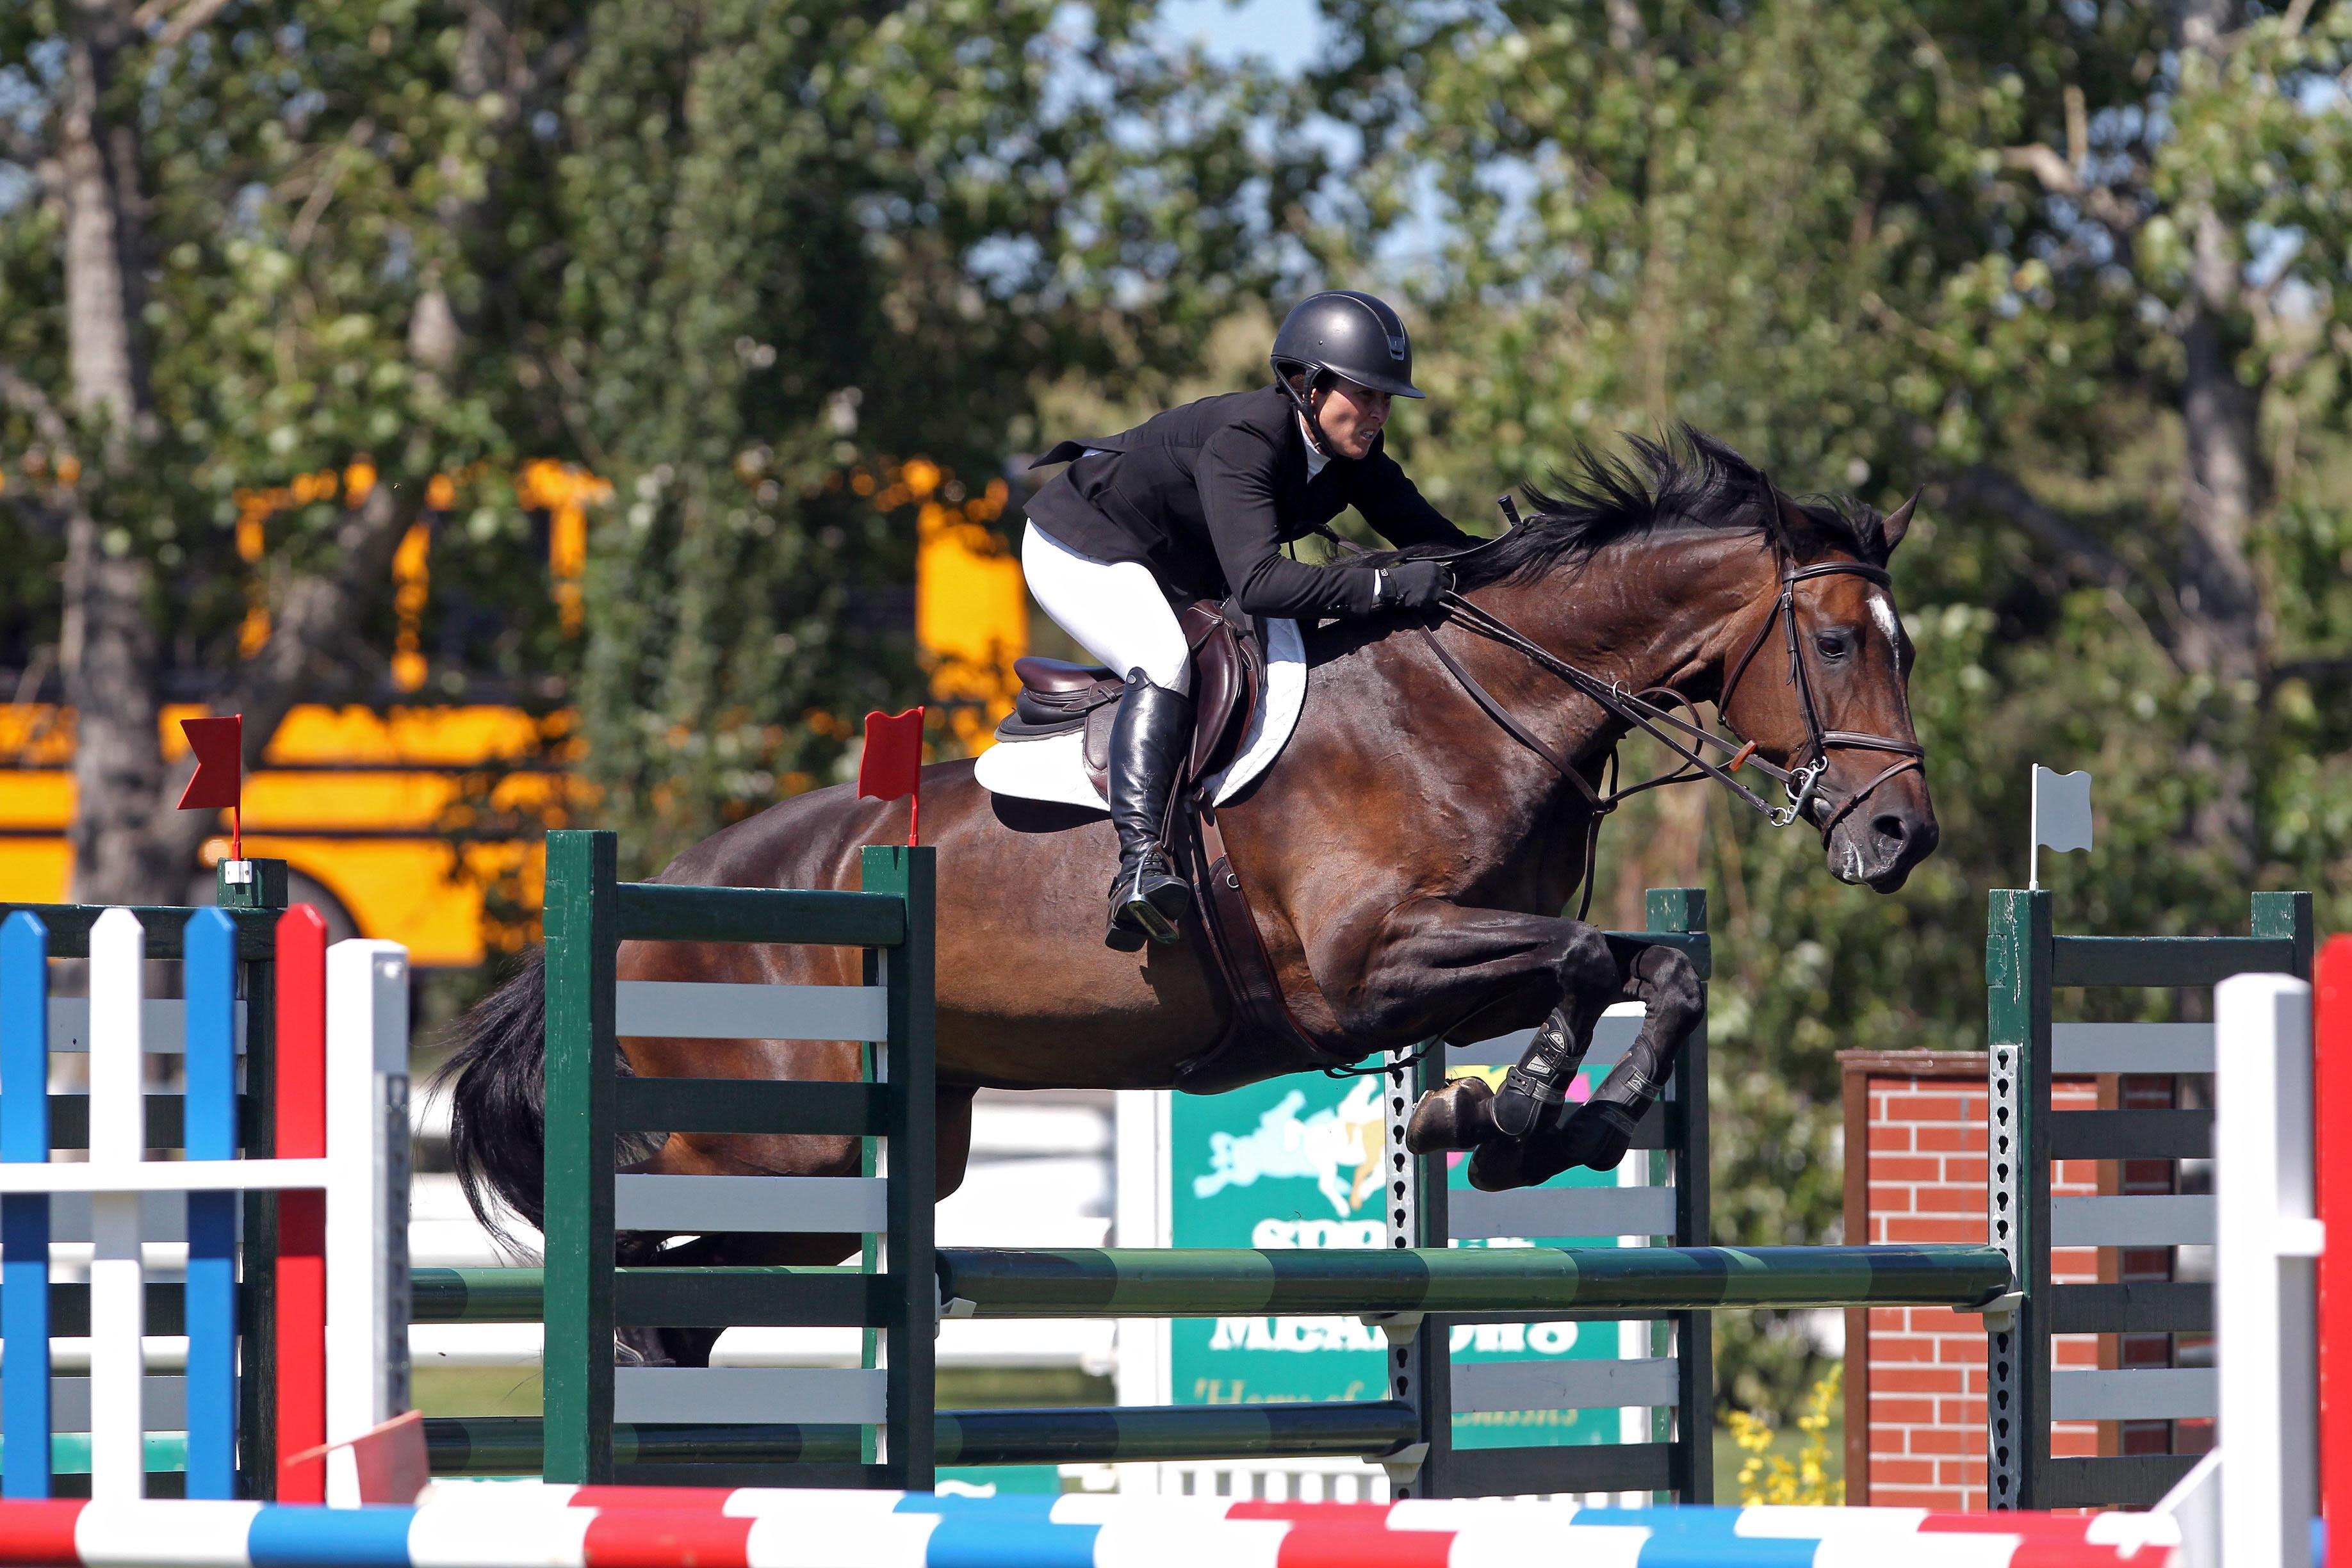 liz_atkins_at_spruce_meadows_with_her_grand_prix_mount_undine._photo_cansport_photo.jpg